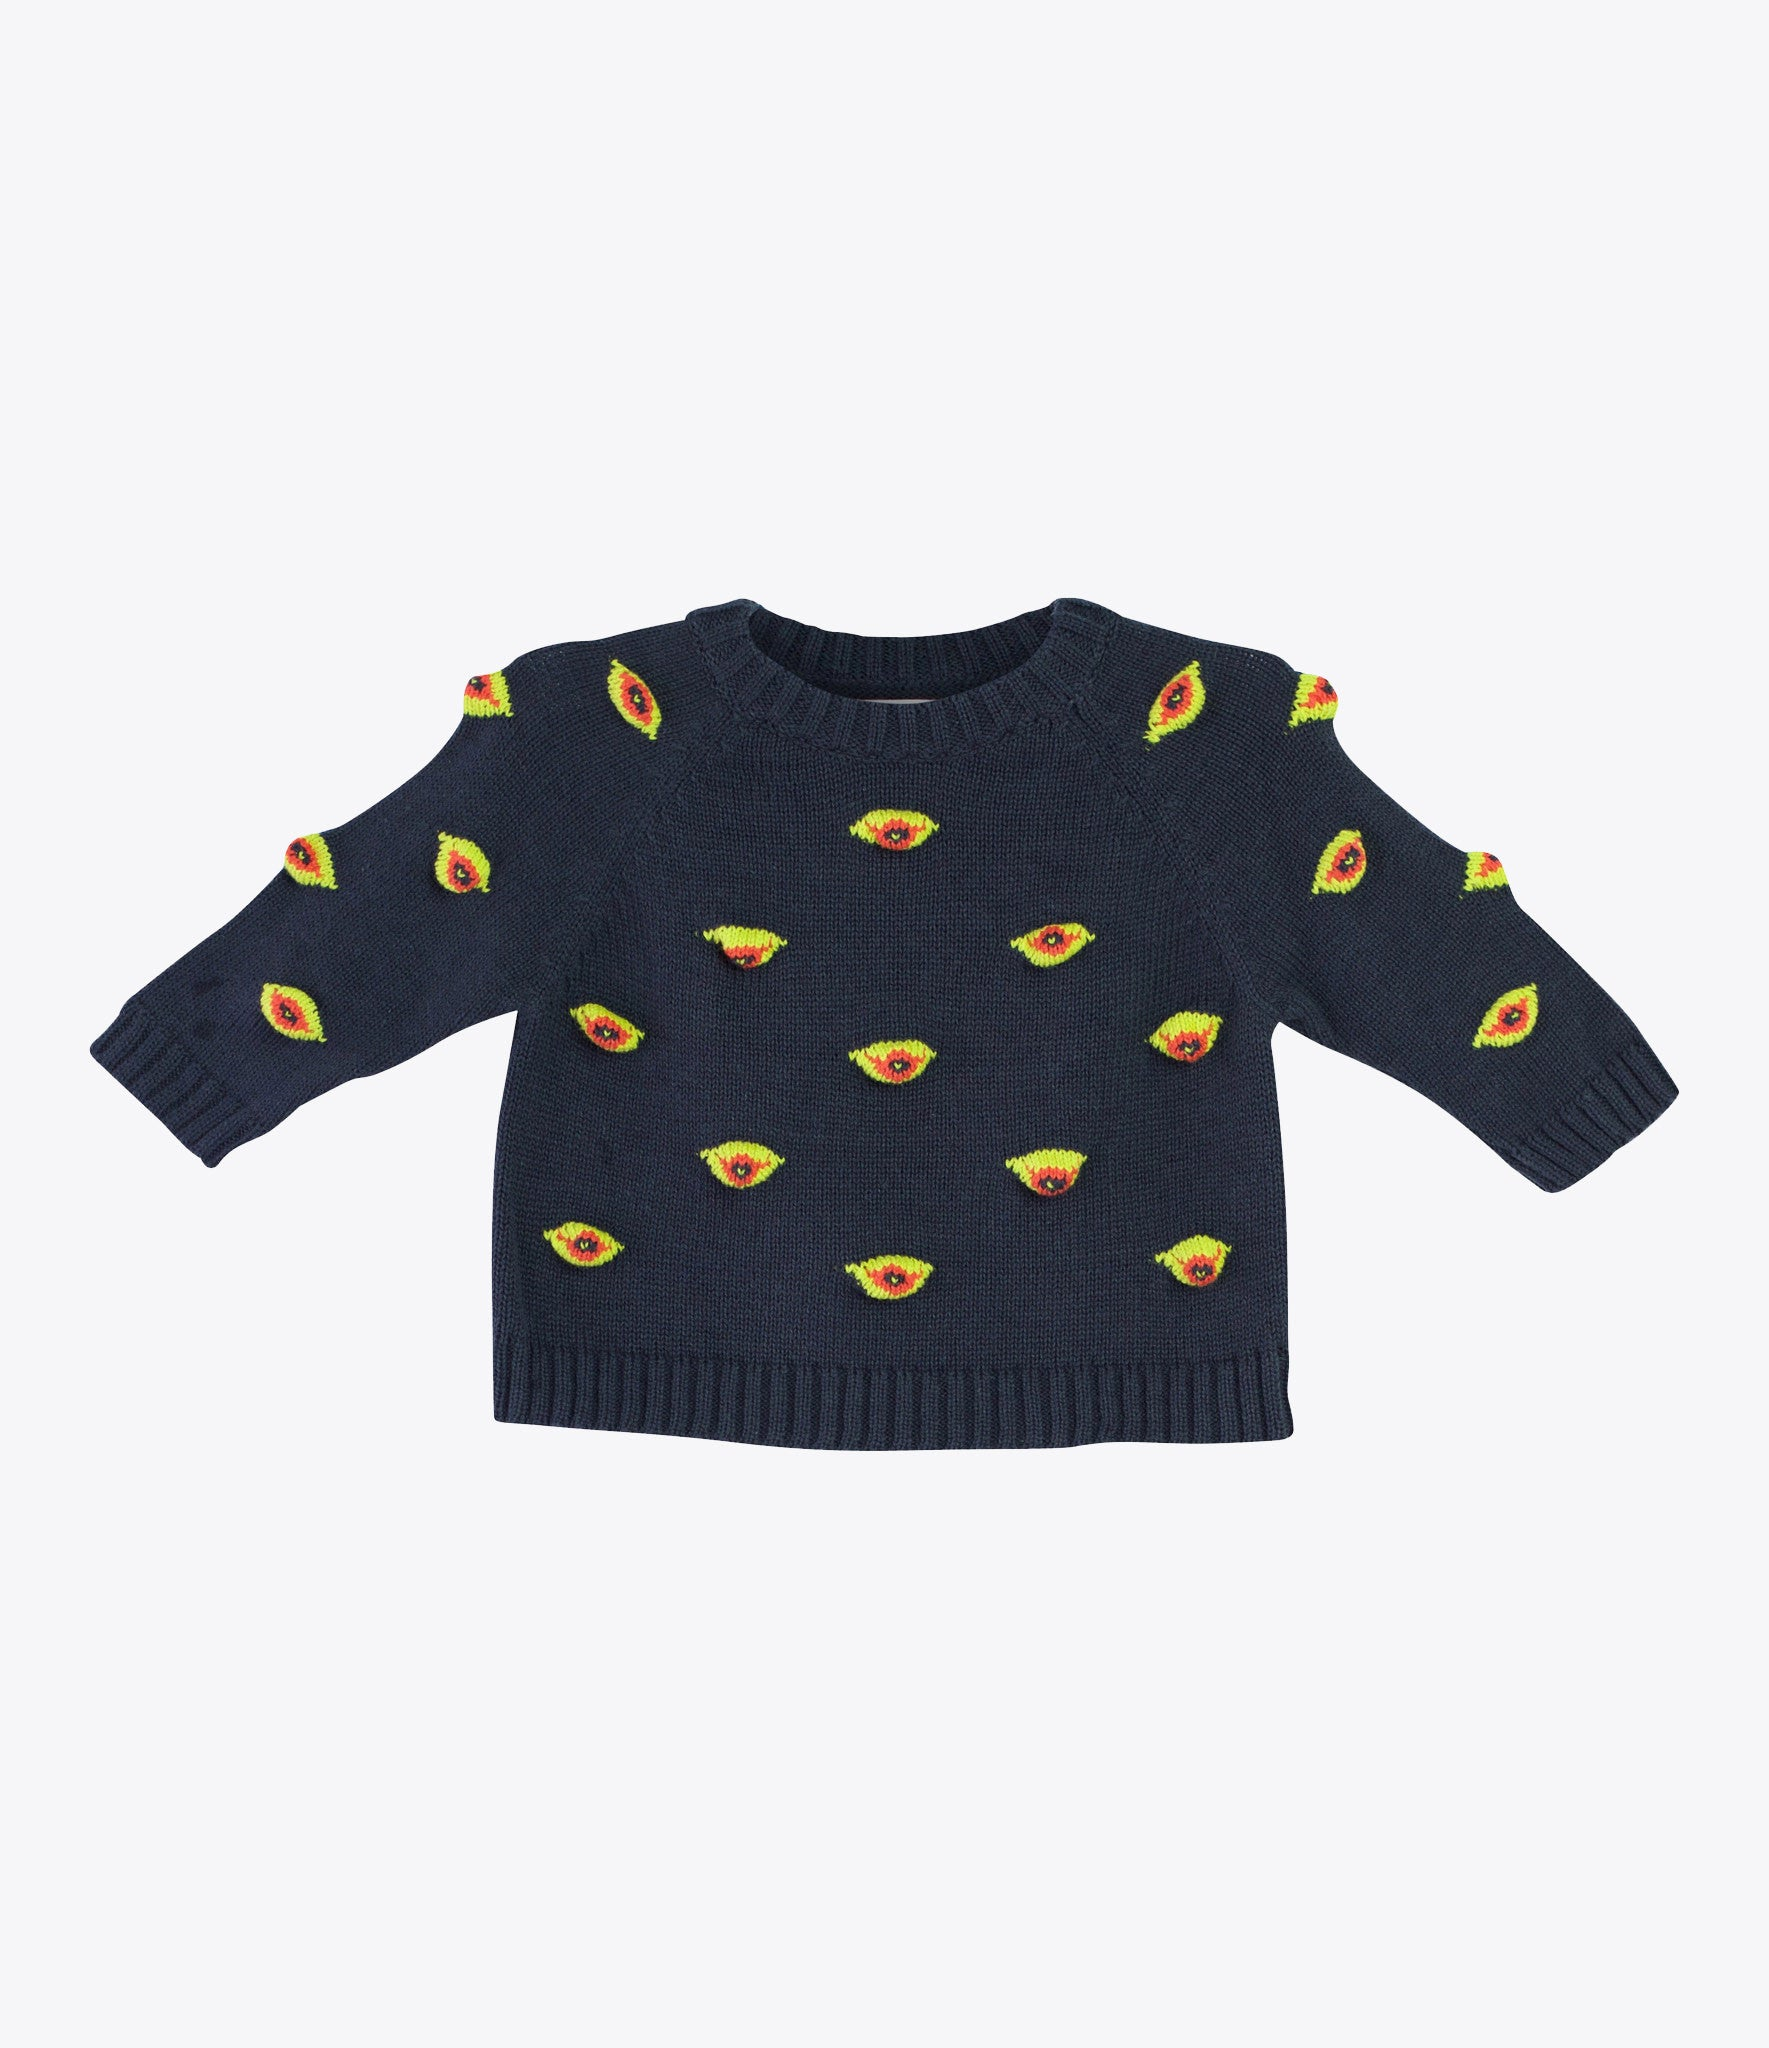 Baby Degen charcoal eyes sweat, hand knitted, special baby clothes, baby shower gift. Available at Made Mini, Auckland NZ